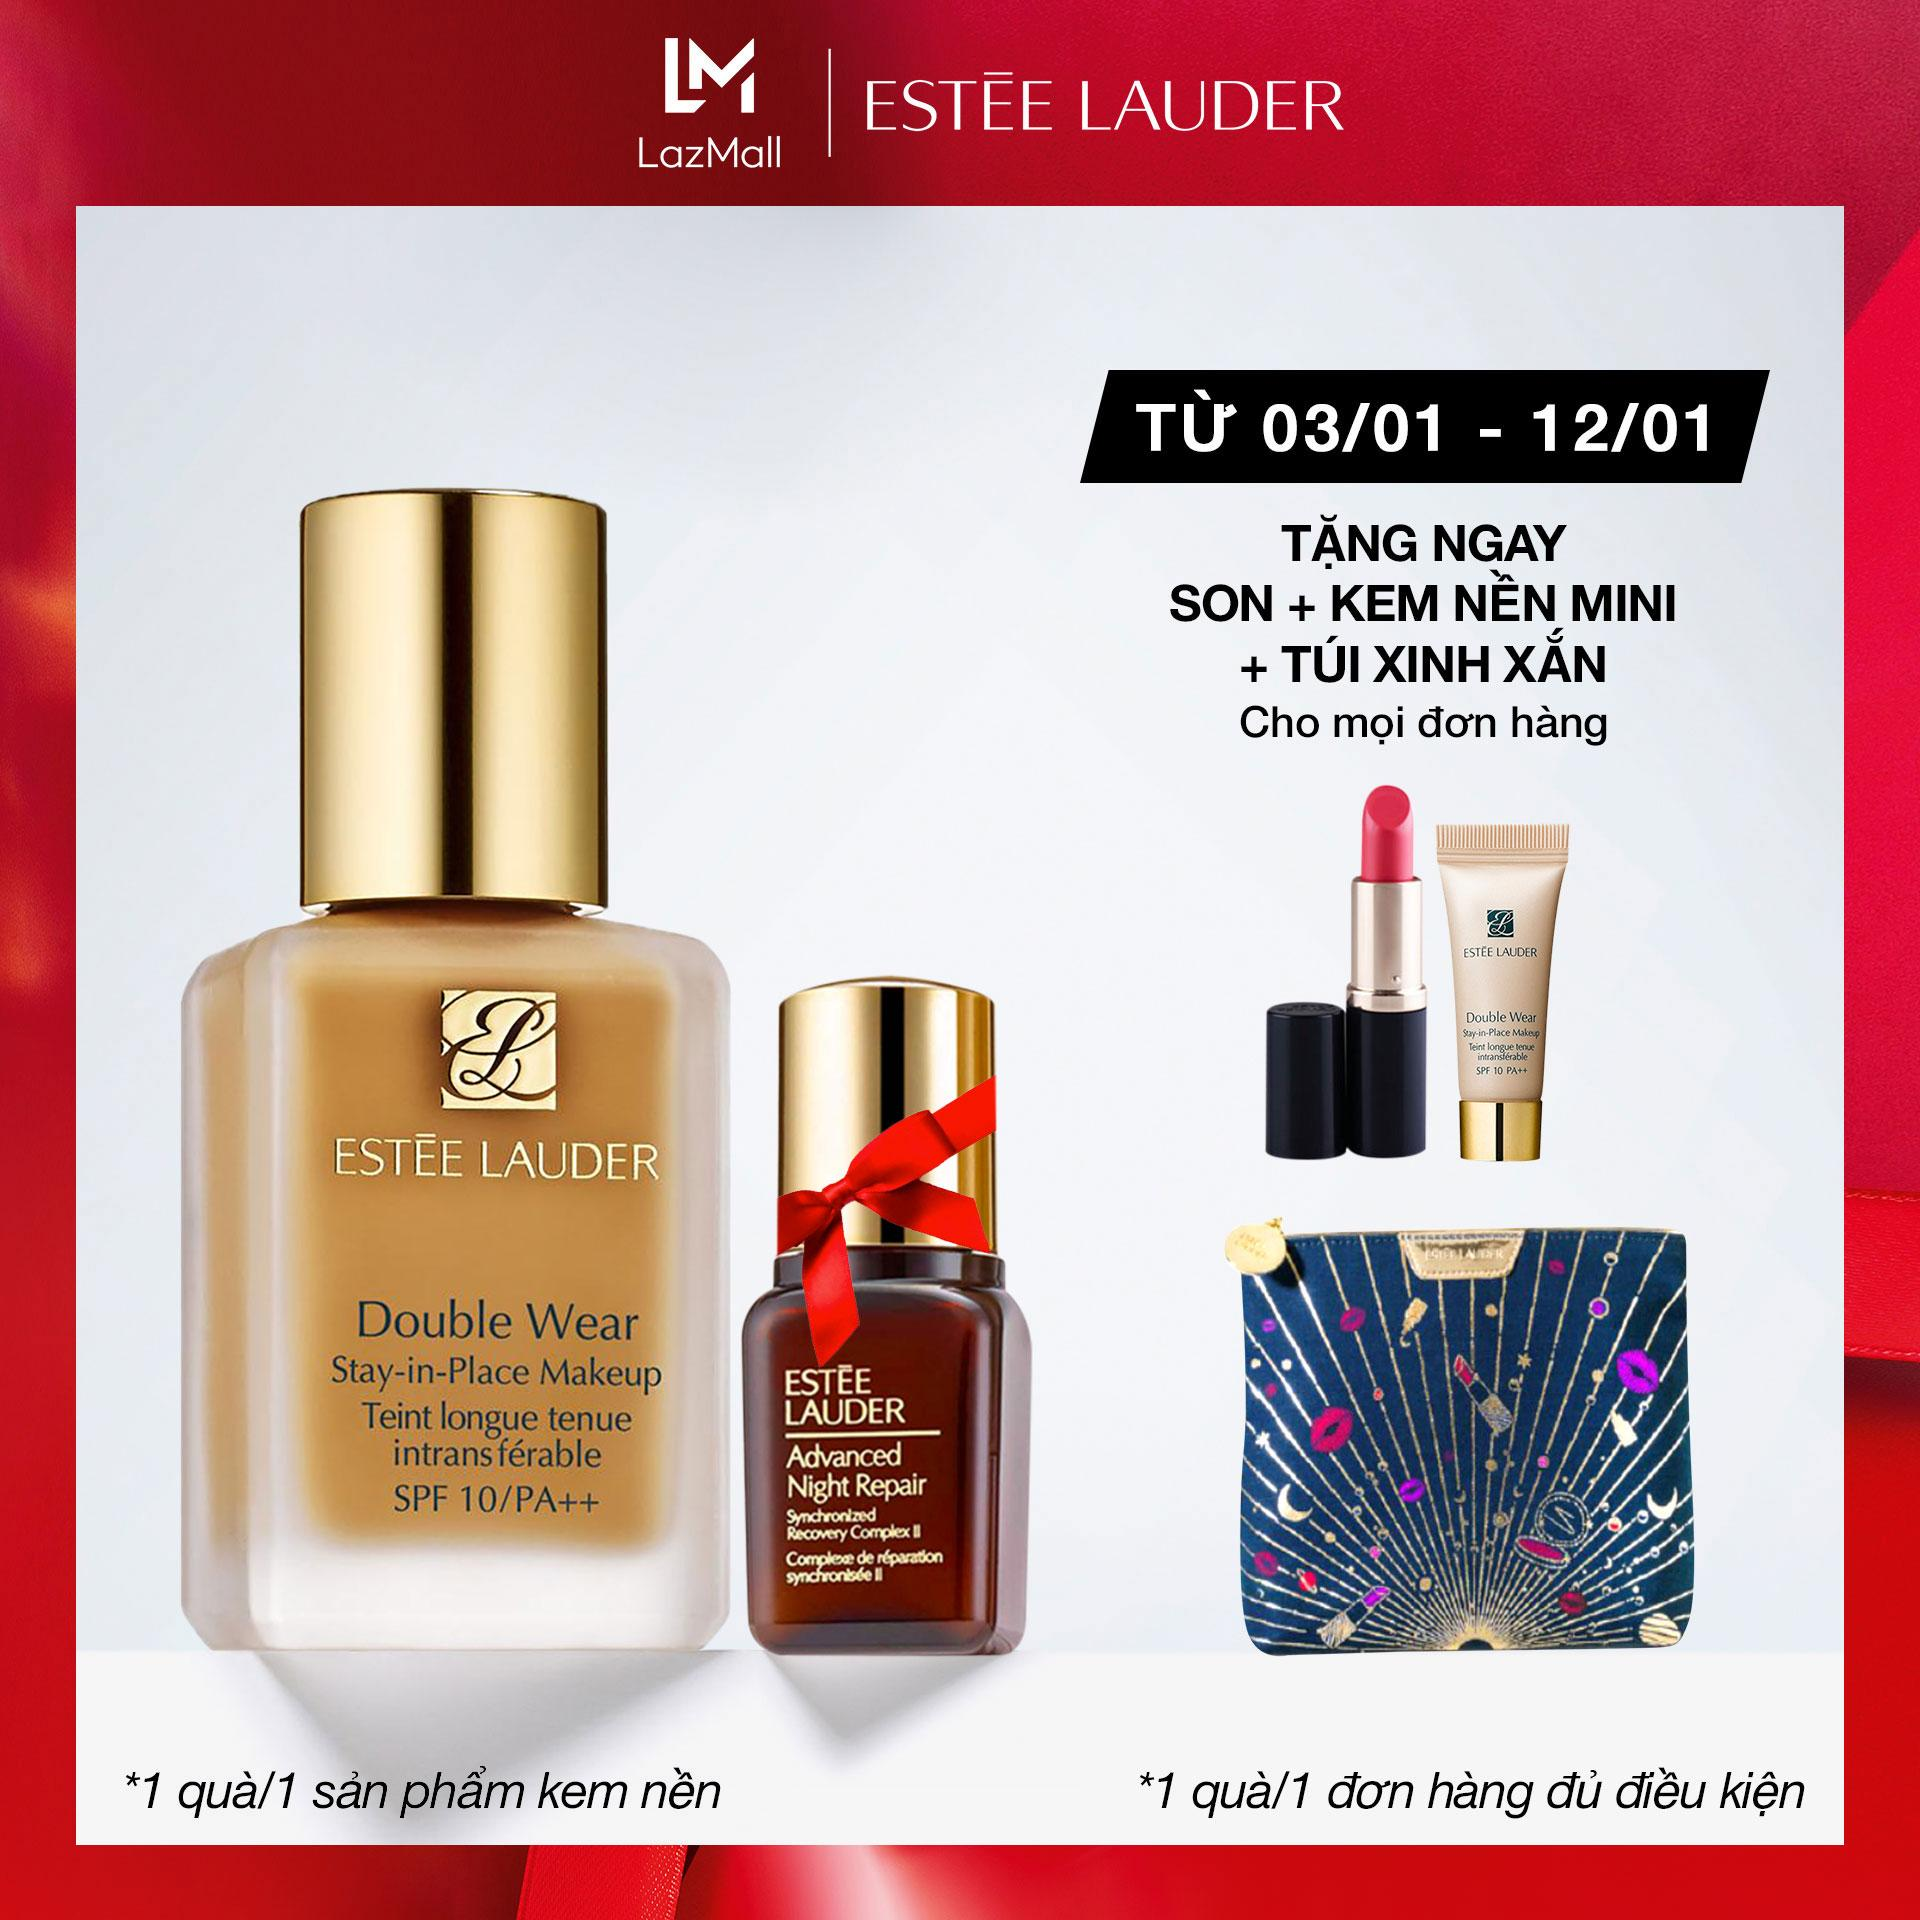 Kem nền lâu trôi Estee Lauder Double Wear Stay-in-Place Makeup SPF 10 - Foundation 30ml cao cấp